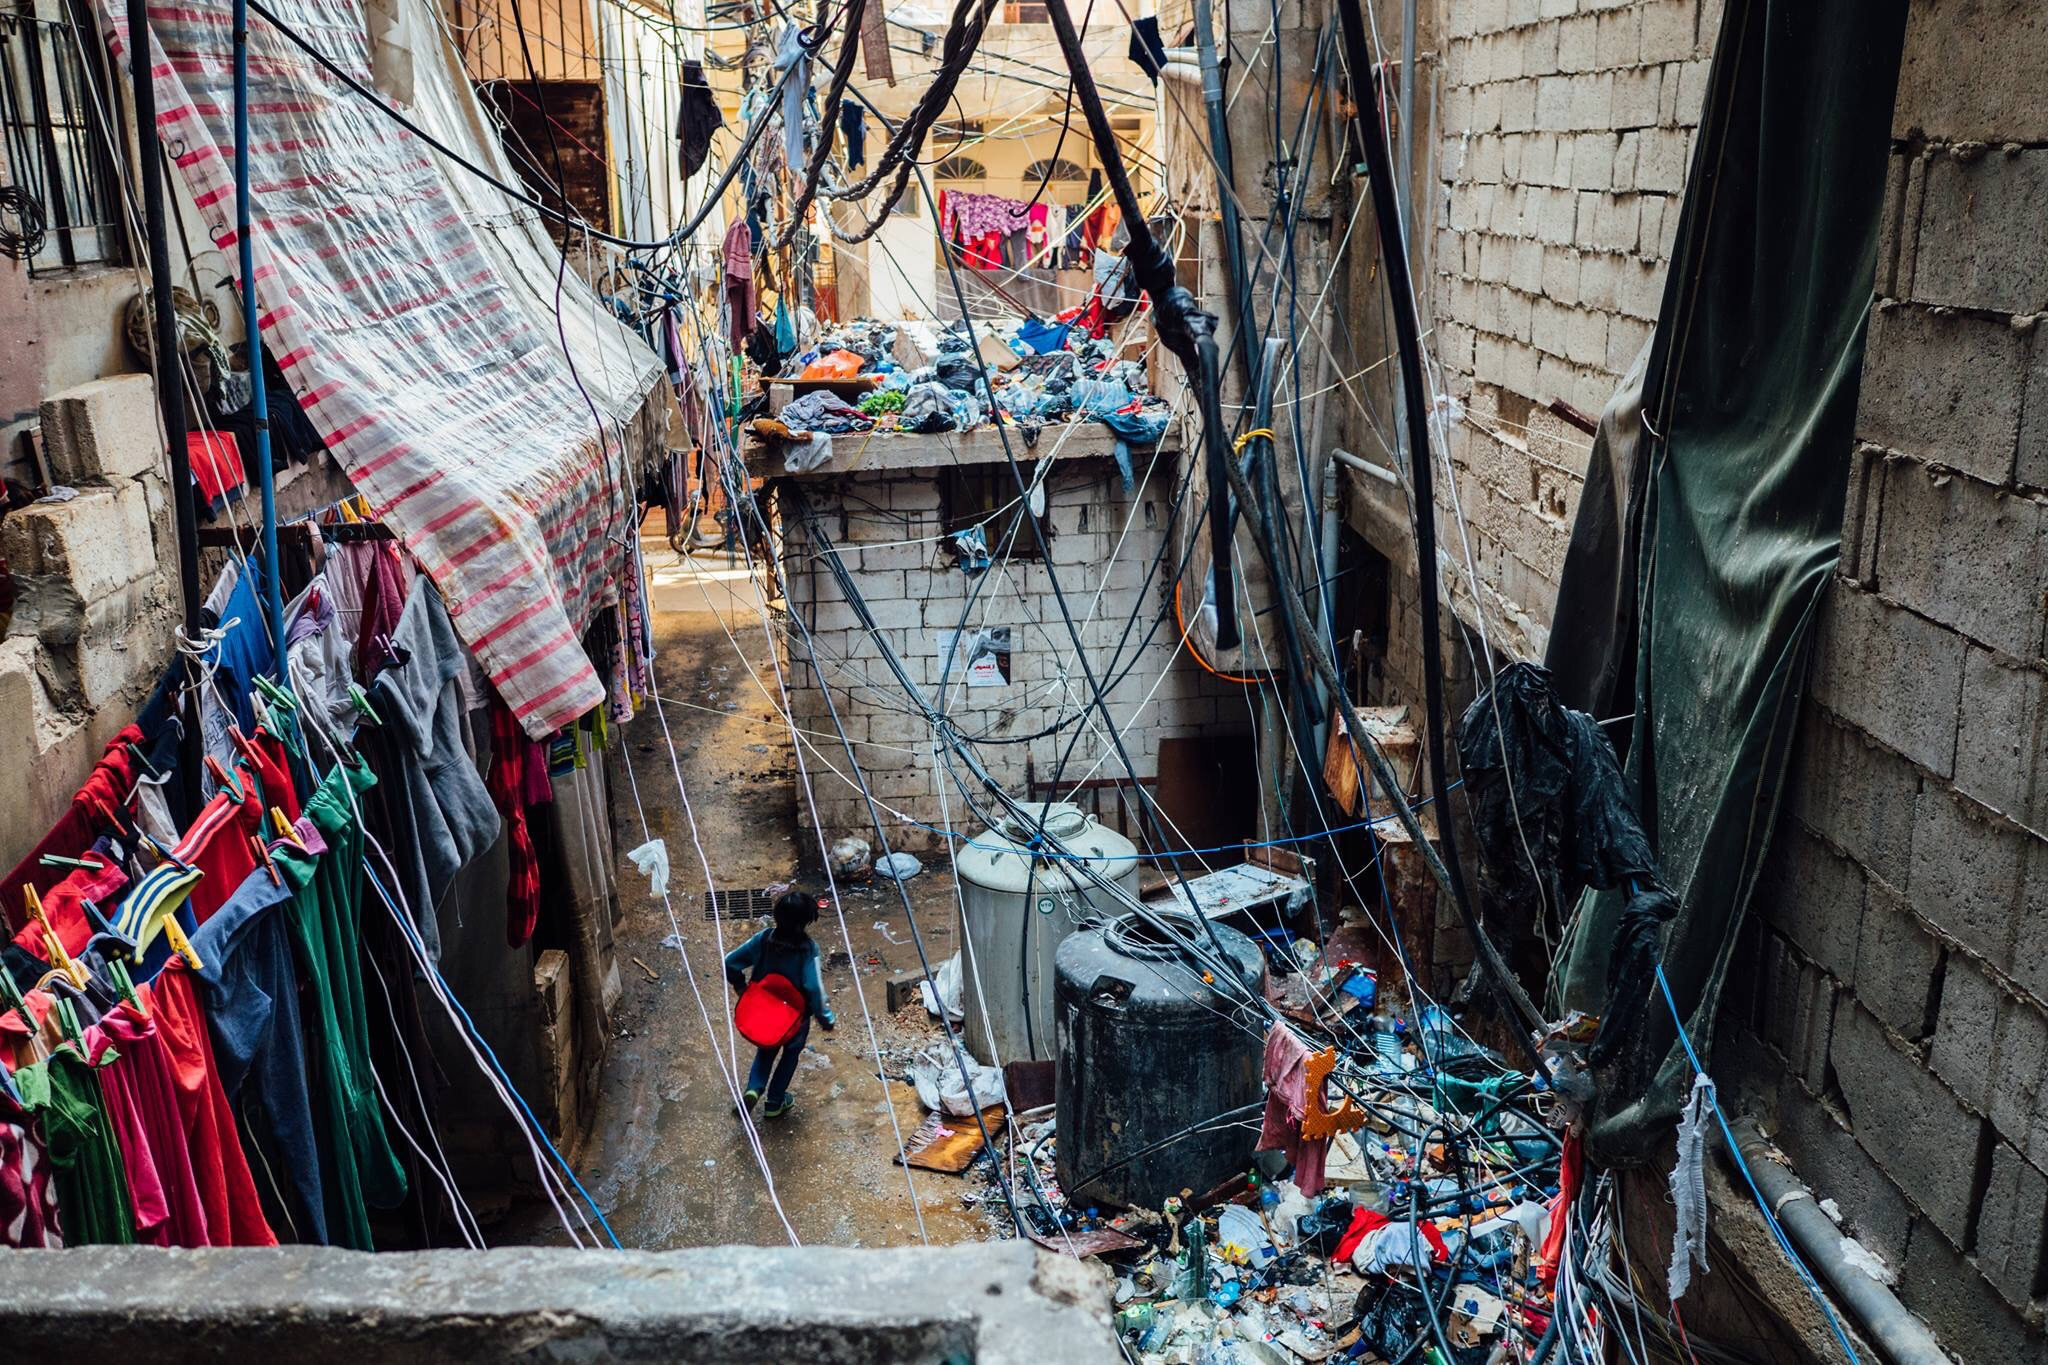 Chatila Palestinian Refugee Camp in central Beirut. December 11, 2015. Photo courtesy of Alex Meade.